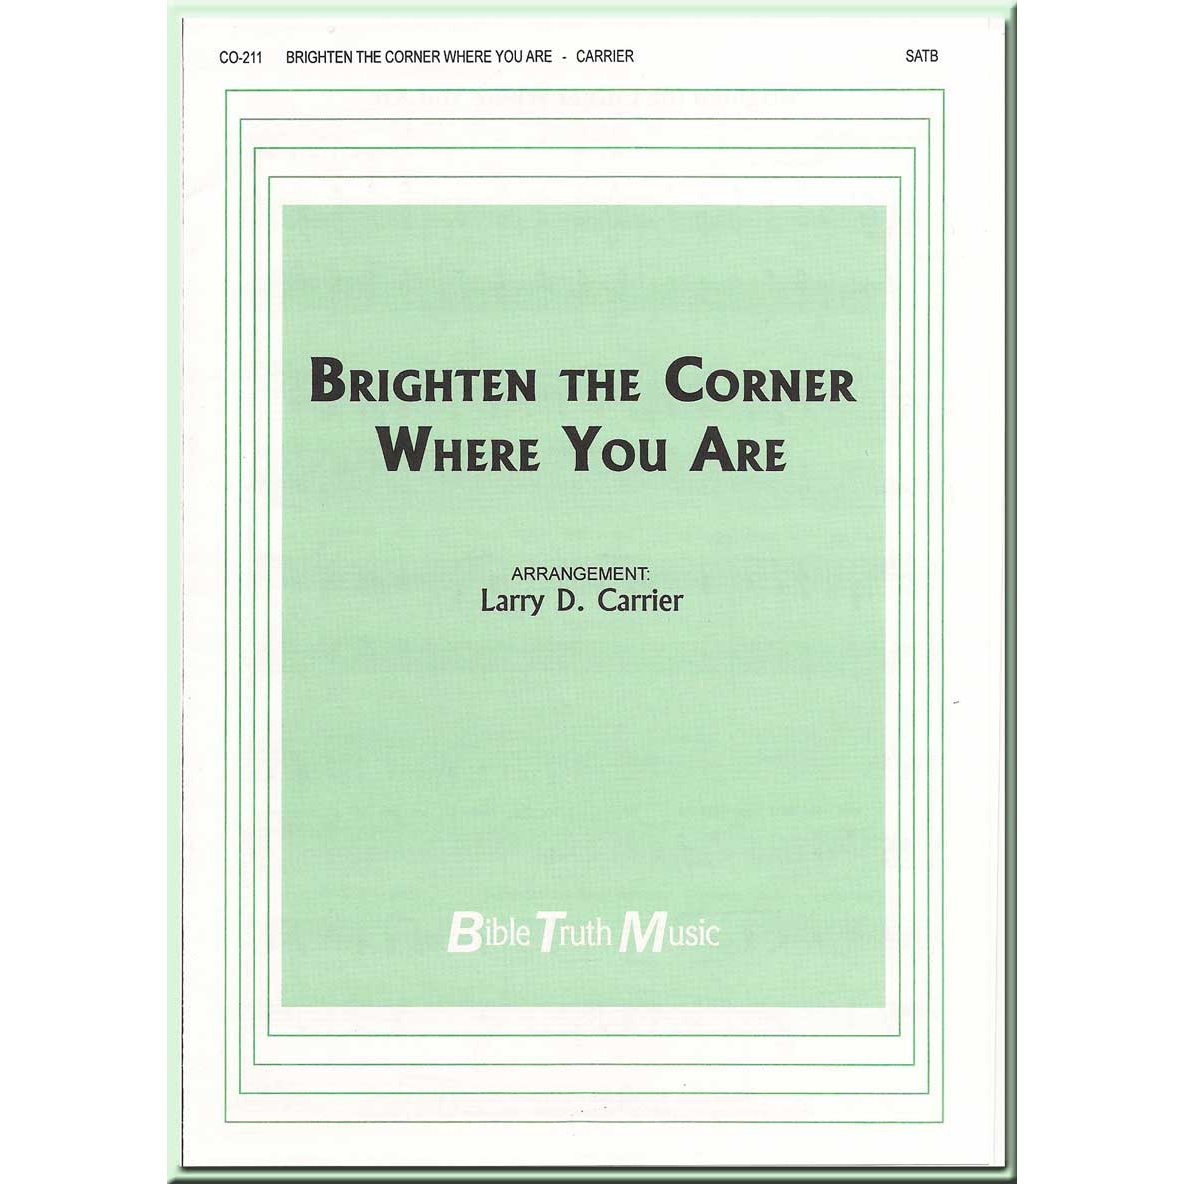 brighten the corner where you are Brighten the corner where you are by chappell, fred and a great selection of similar used, new and collectible books available now at abebookscom.